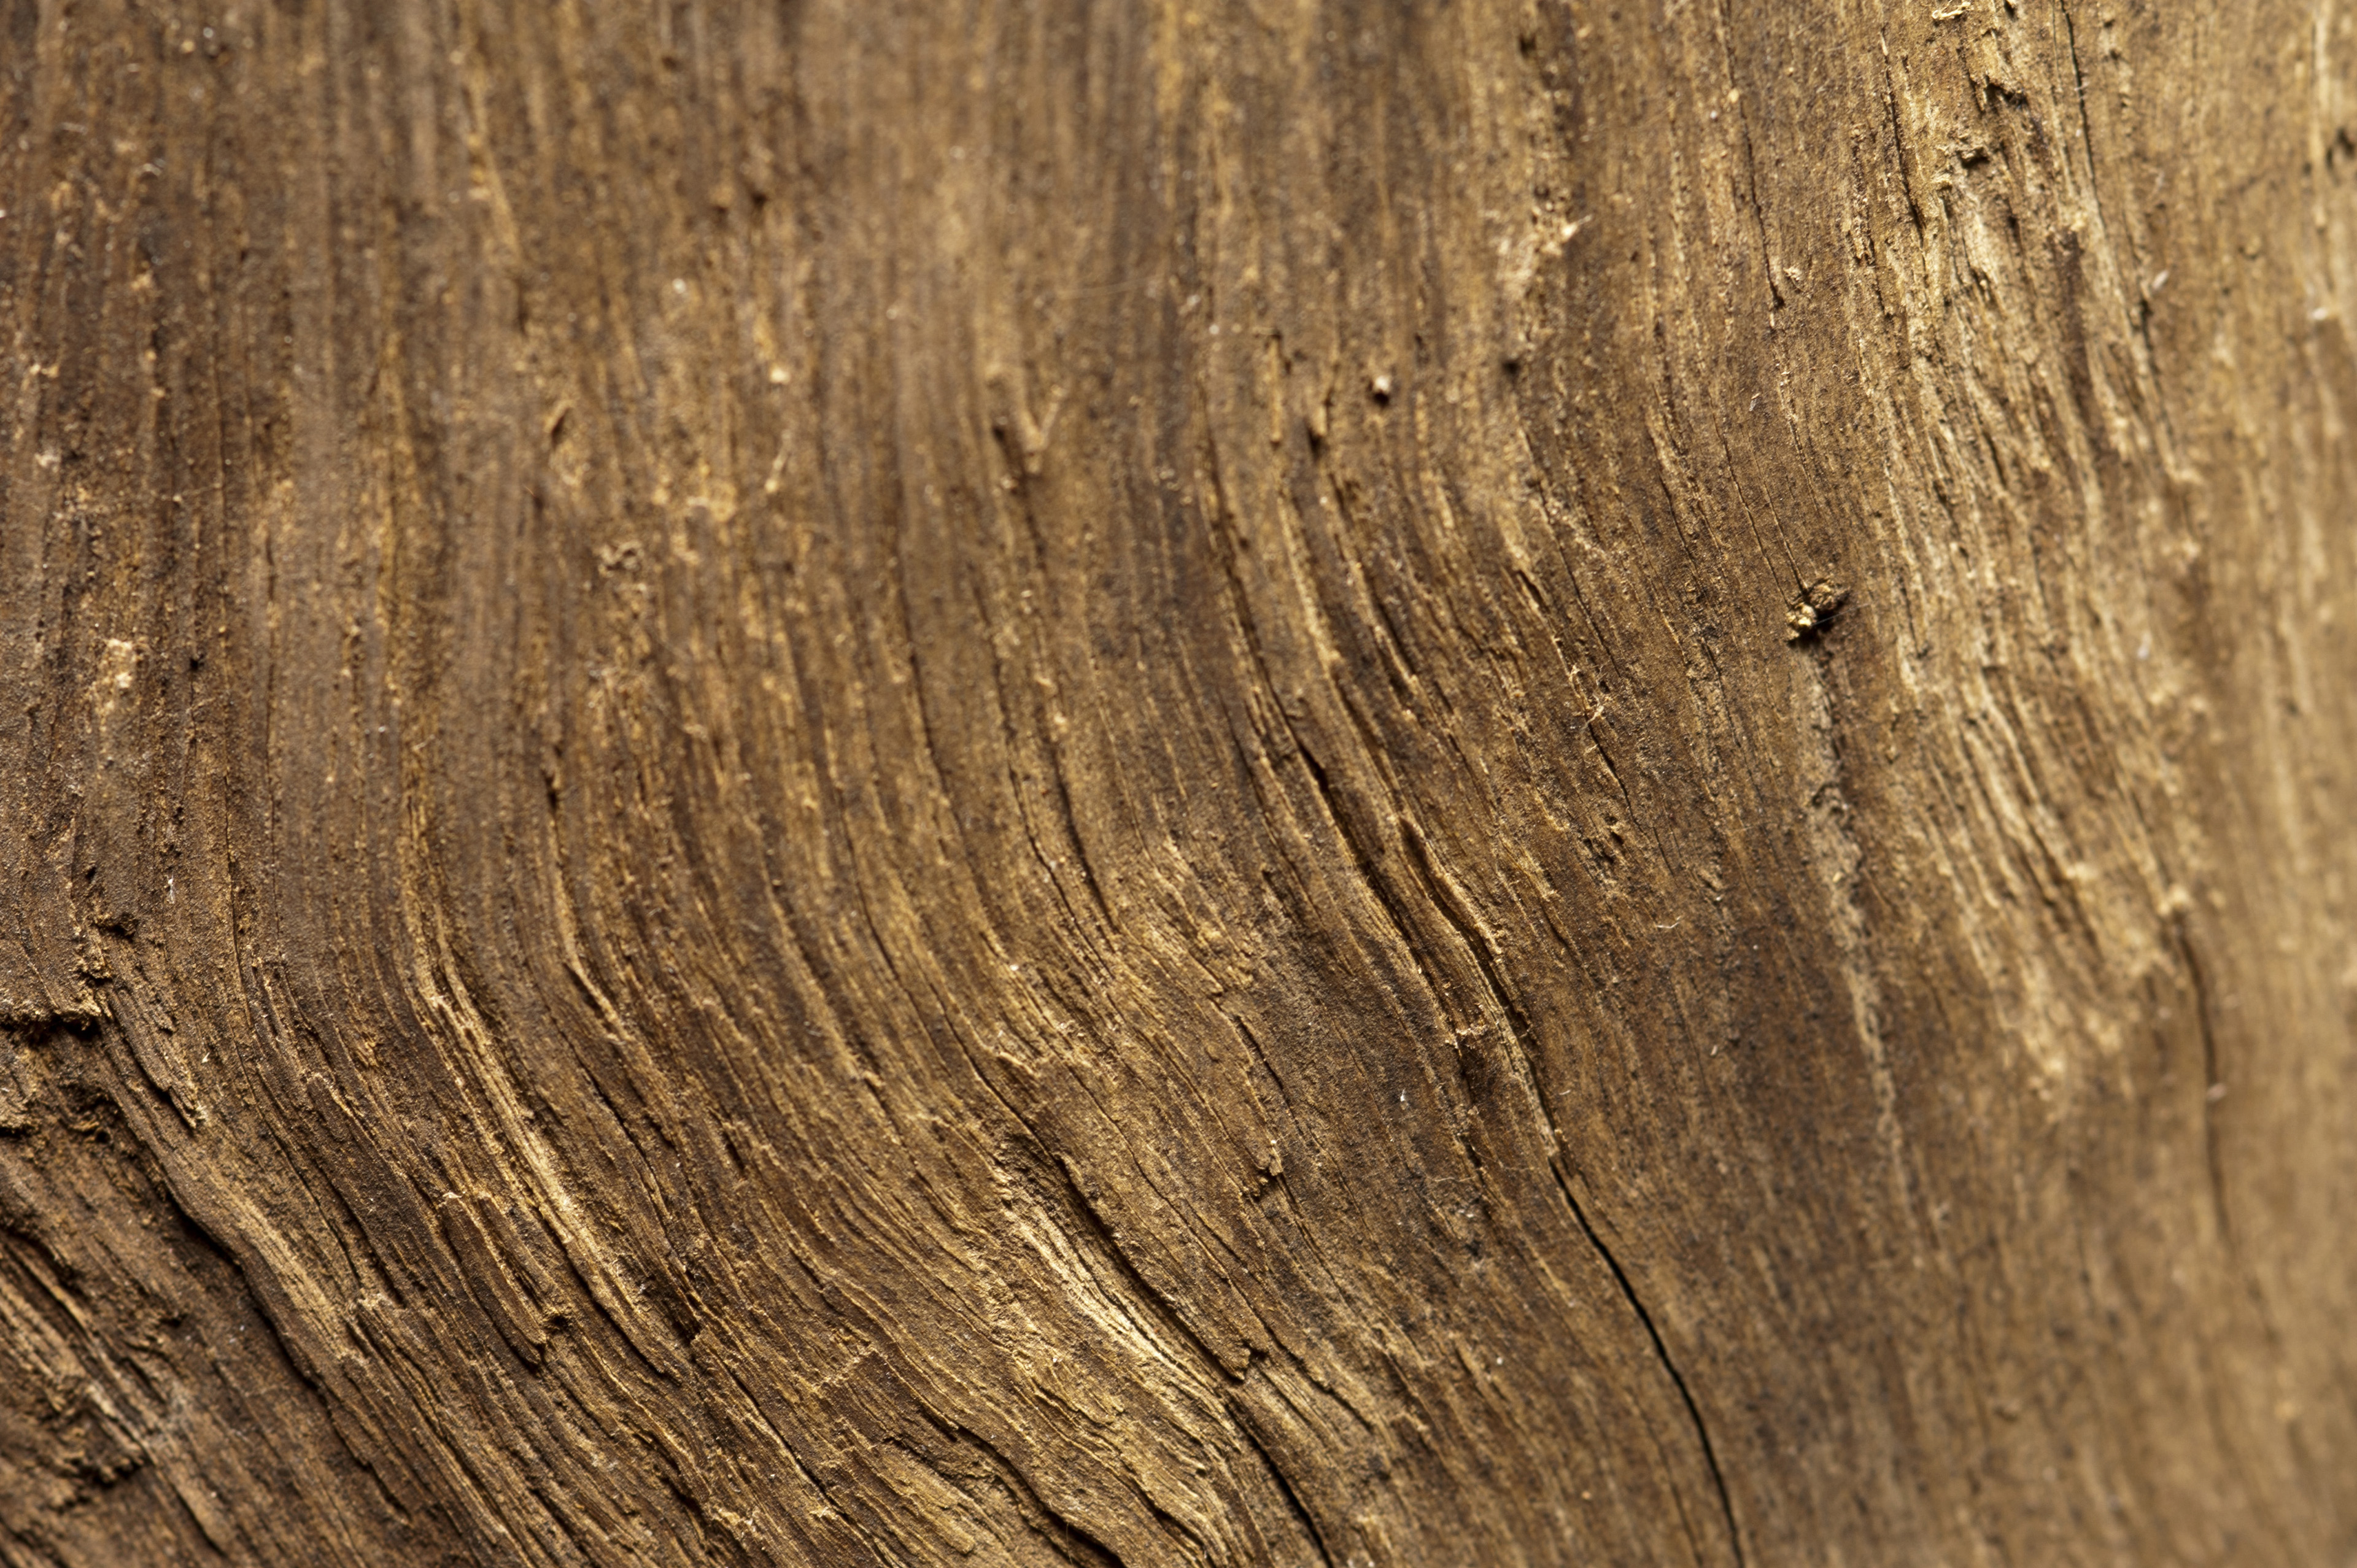 Background texture of rough weathered natural wood with a fiber like surface pattern